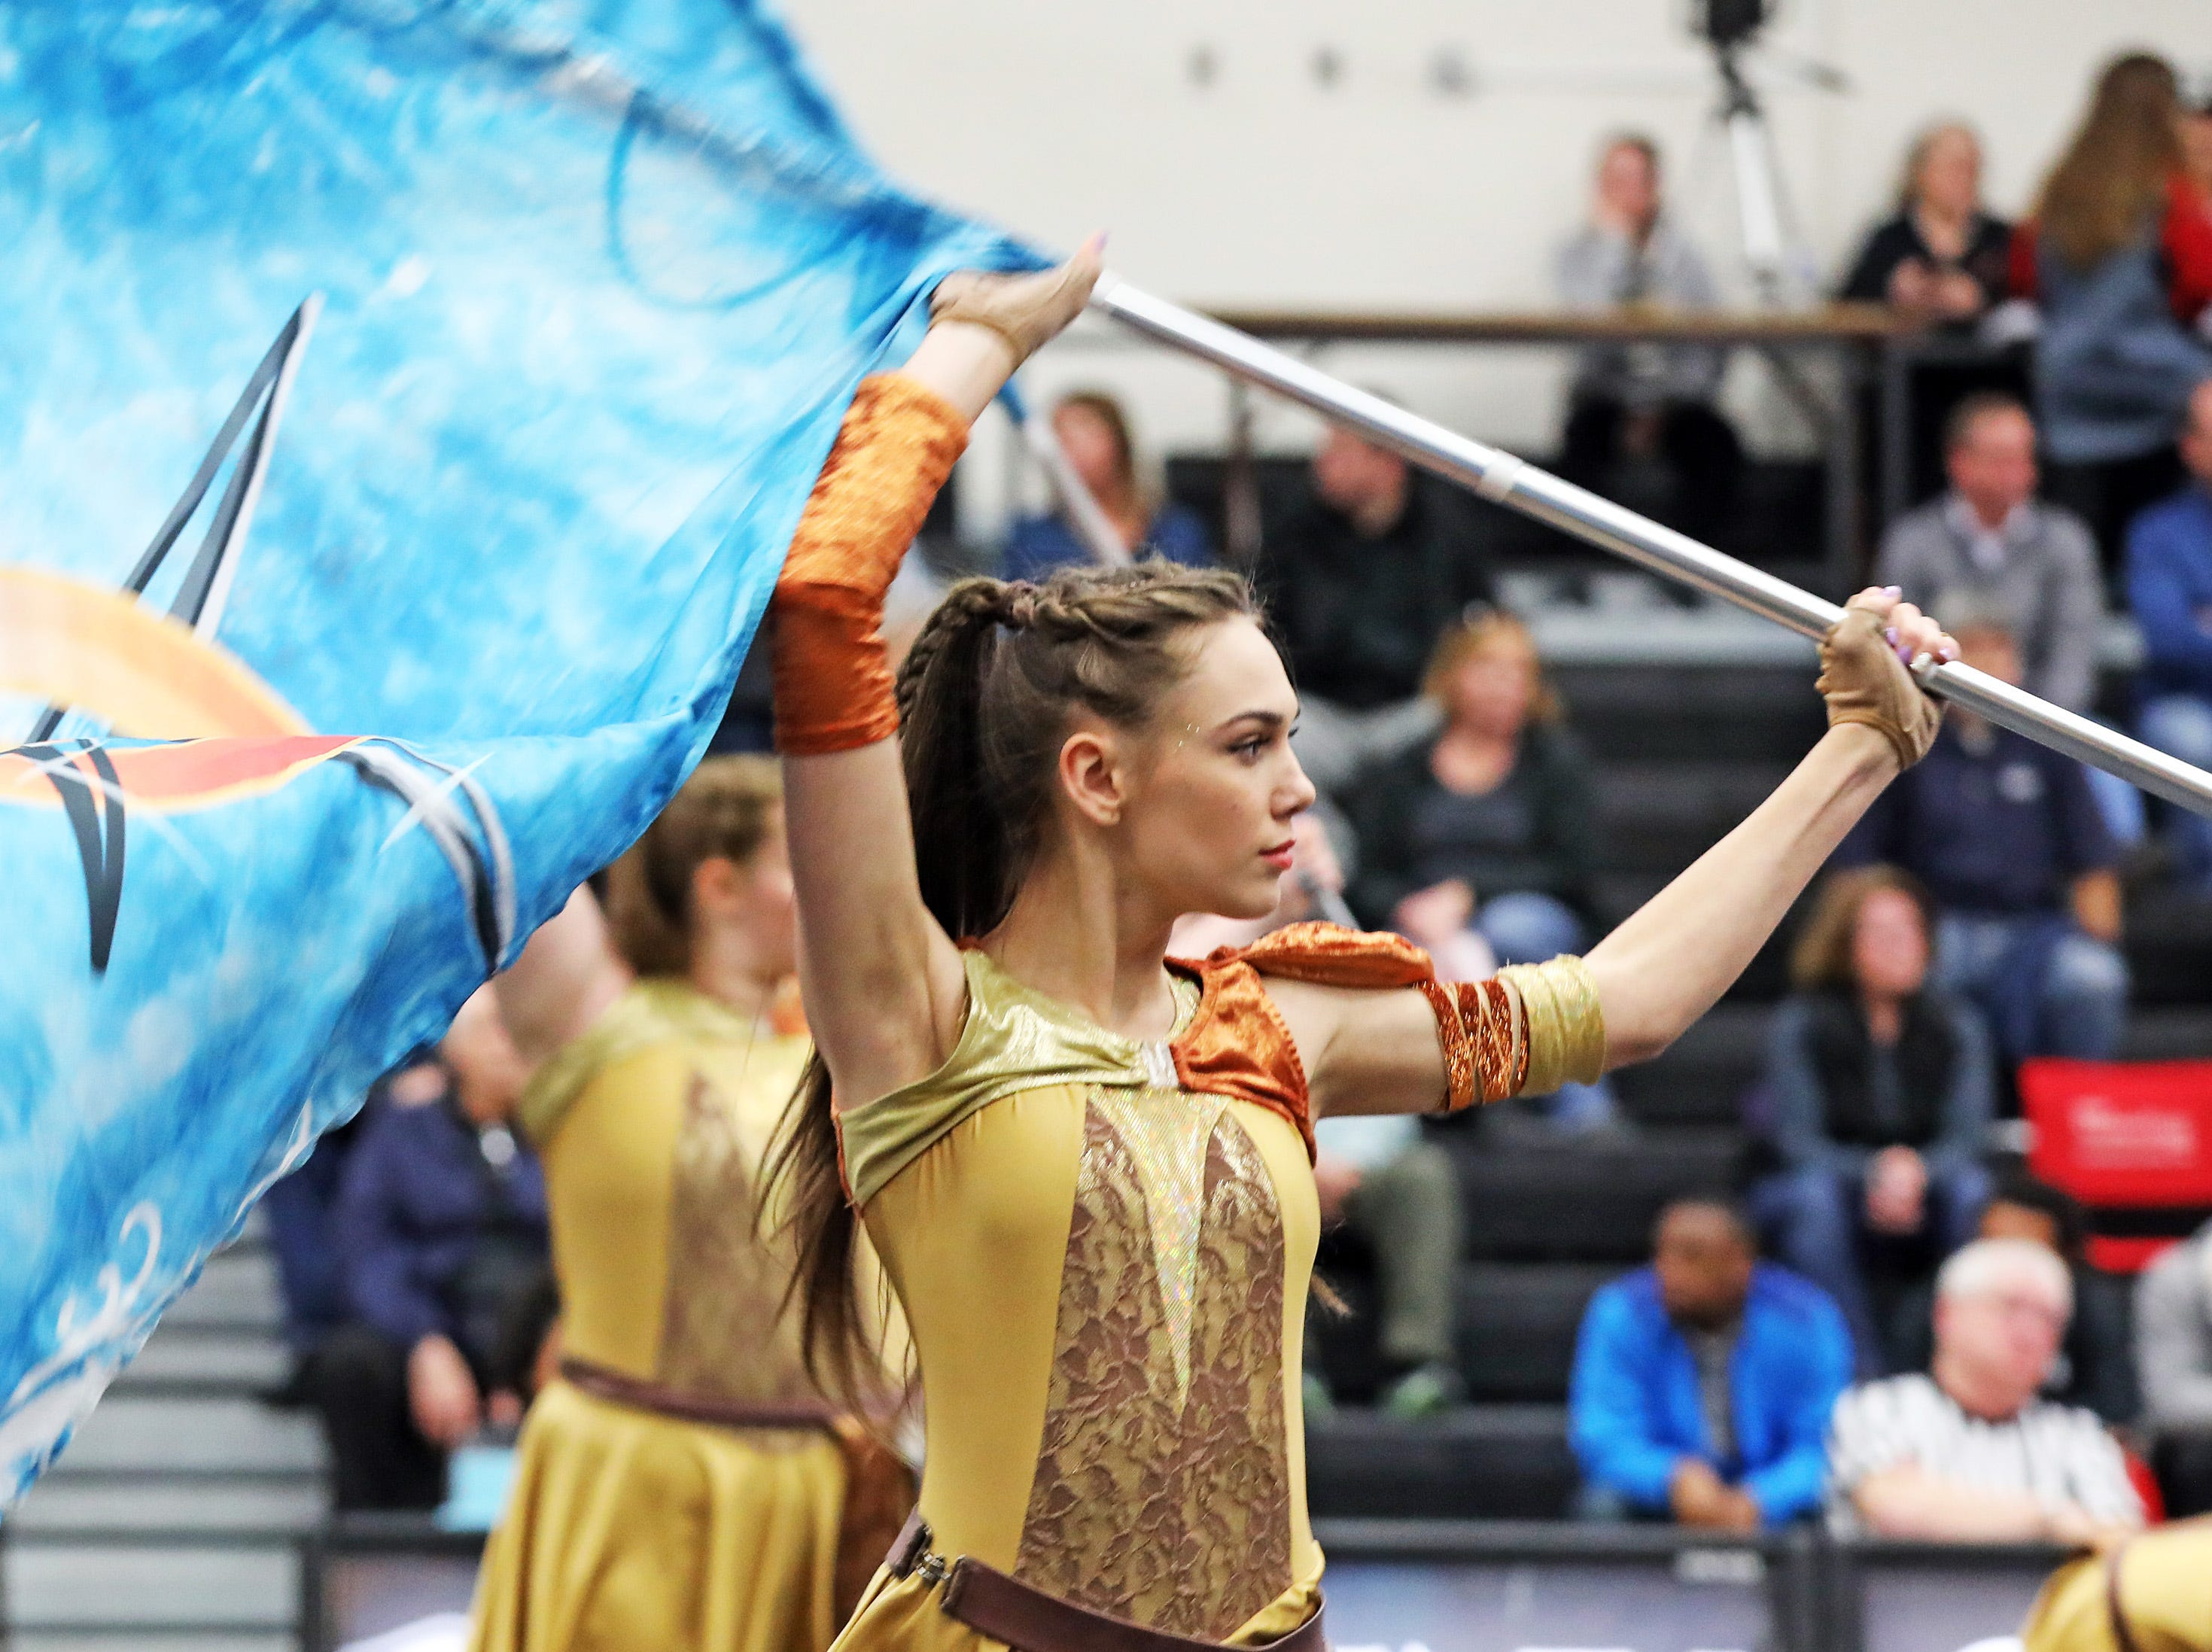 The ACHS Color Guard perform during half-time as the Johnston Dragons compete against the Ankeny Centennial Jaguars in high school girls basketball on Friday, Jan. 4, 2019 at Ankeny Centennial High School.